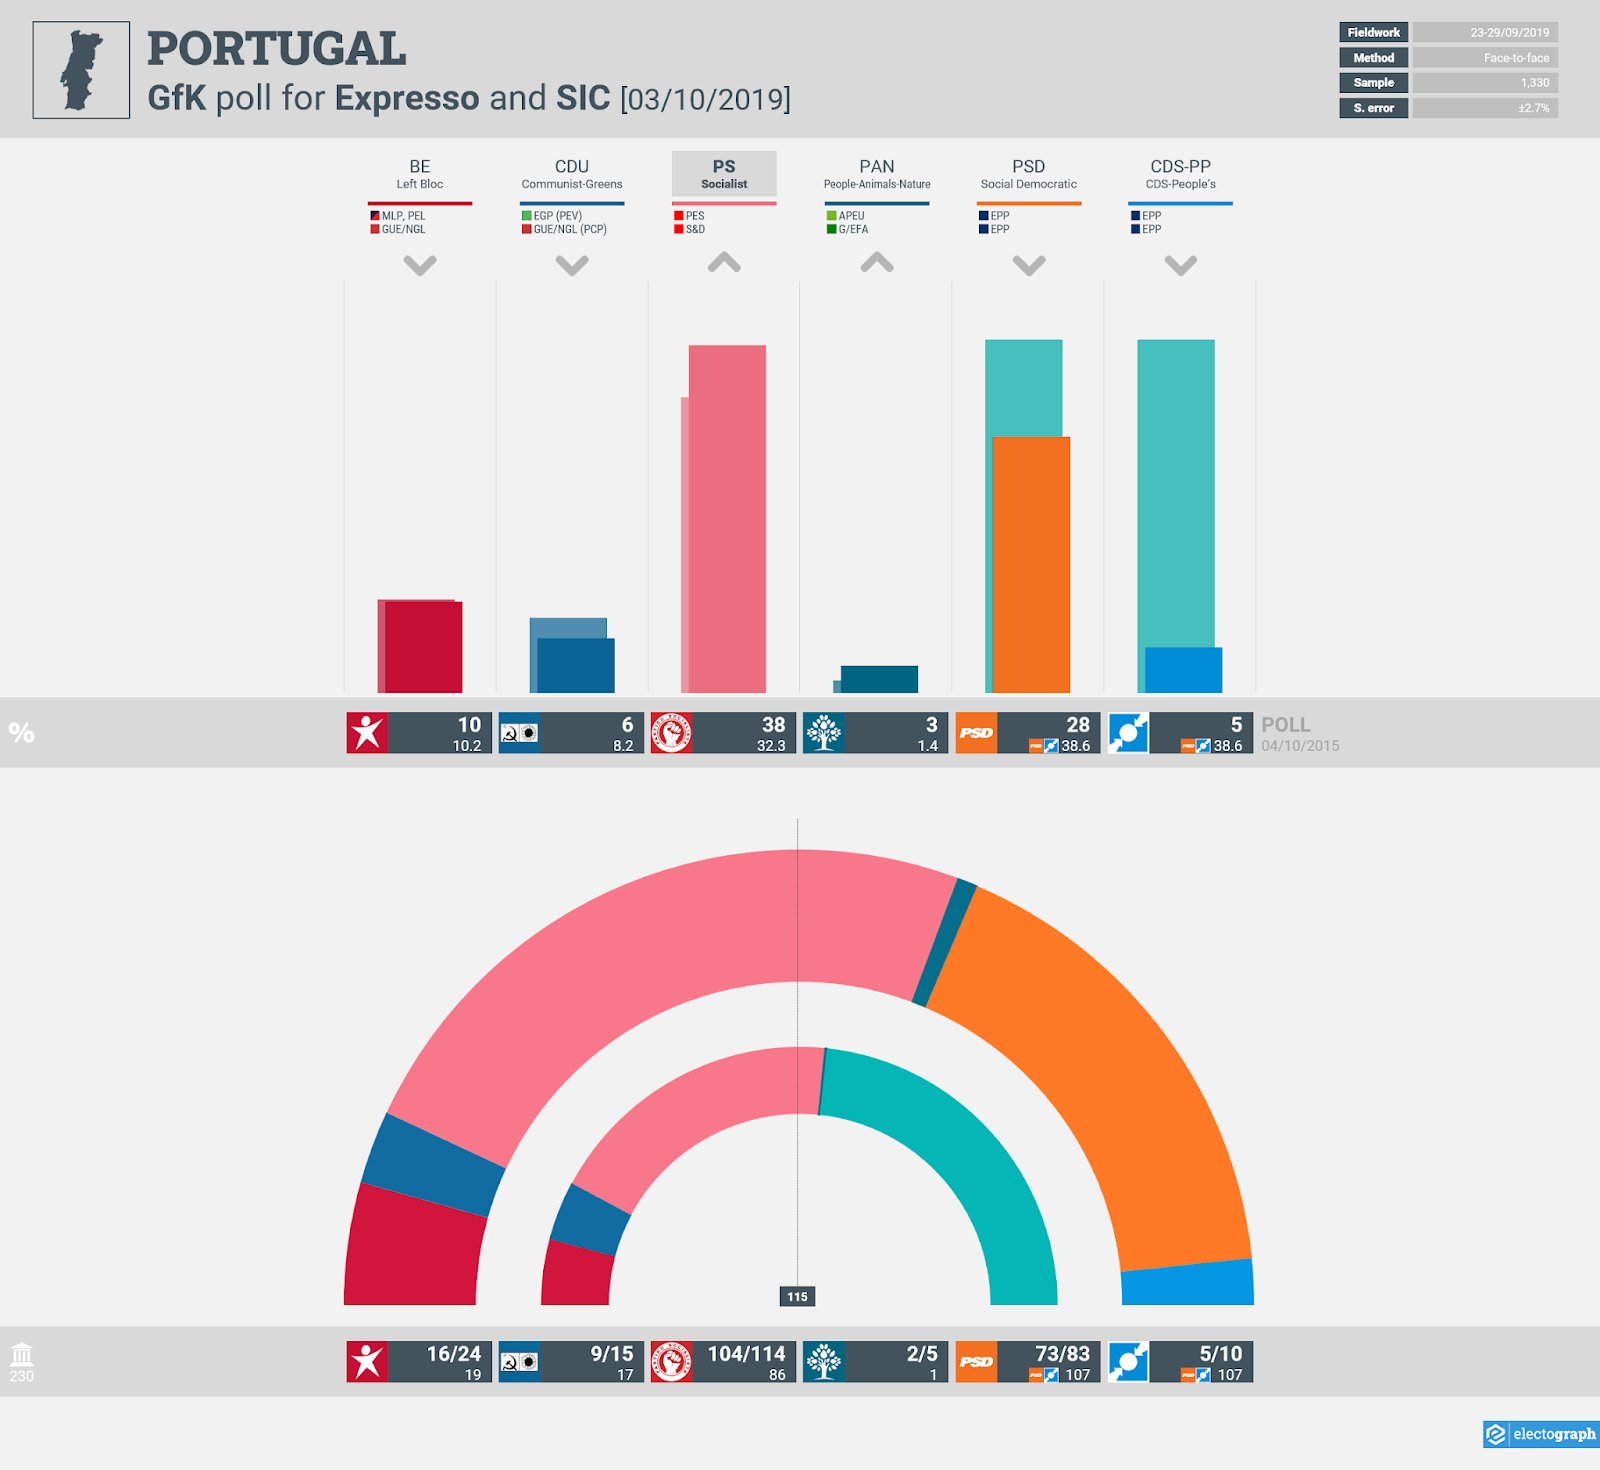 PORTUGAL: GfK poll chart for Expresso and SIC, 3 October 2019